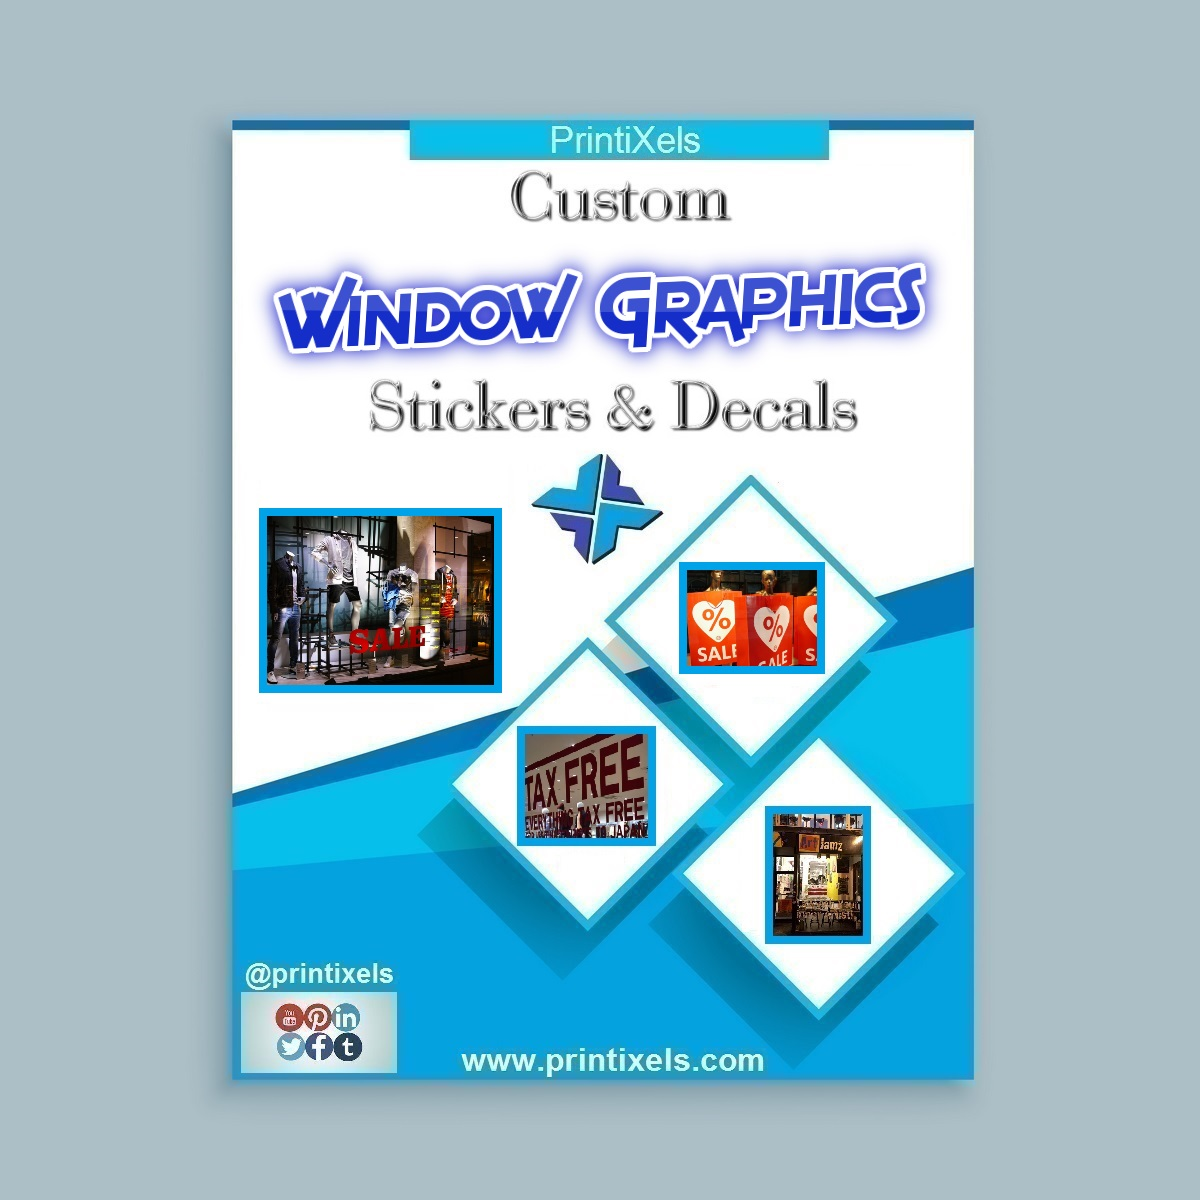 Custom Window Graphics, Stickers & Decals